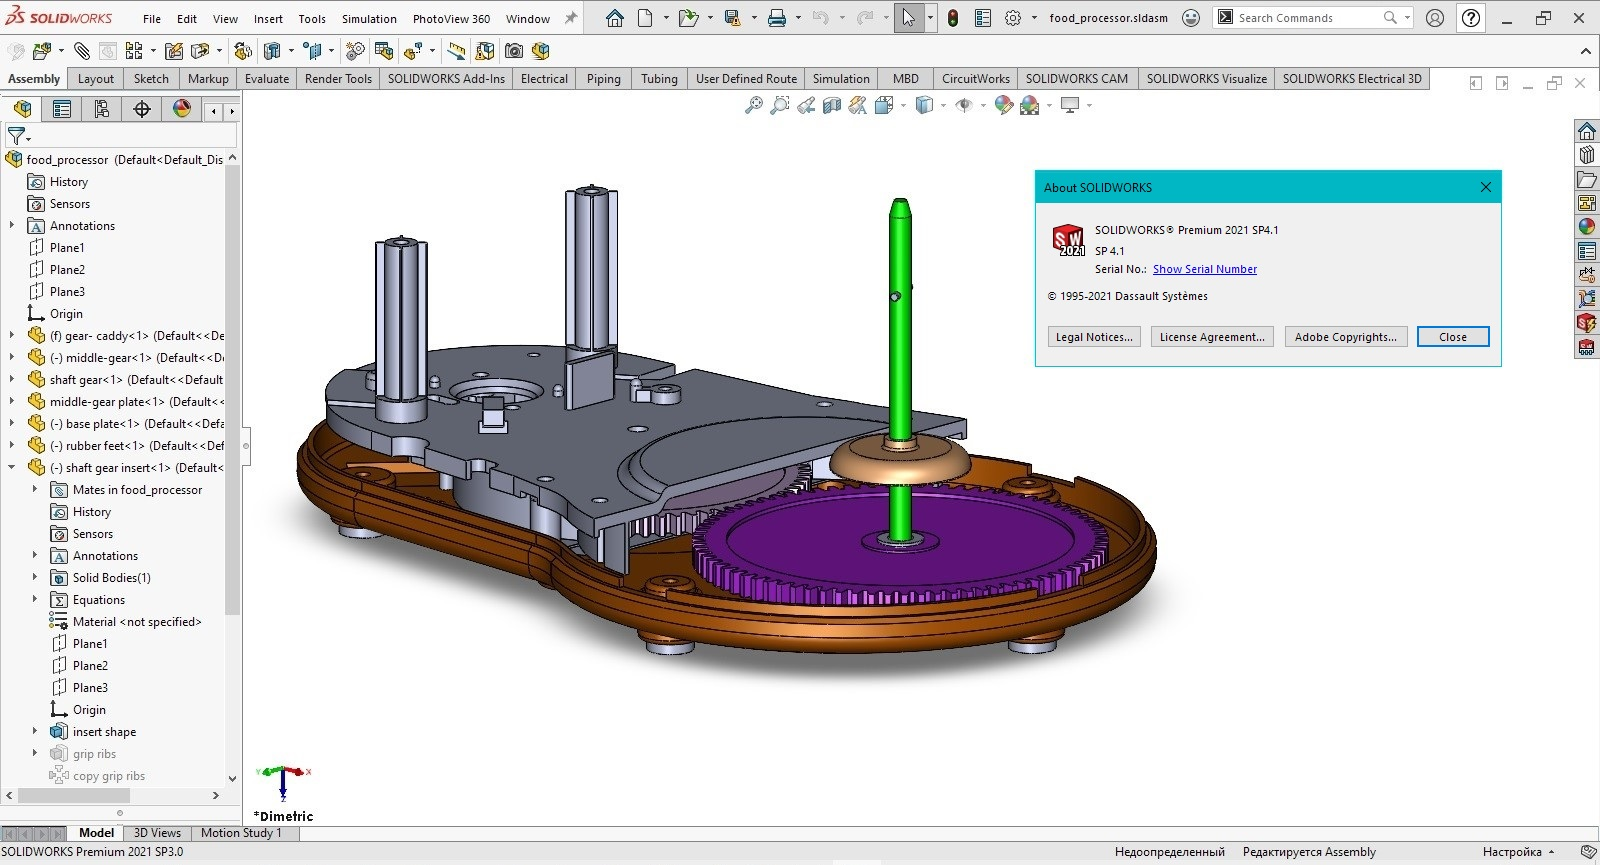 Working with SolidWorks 2021 SP4.1 full